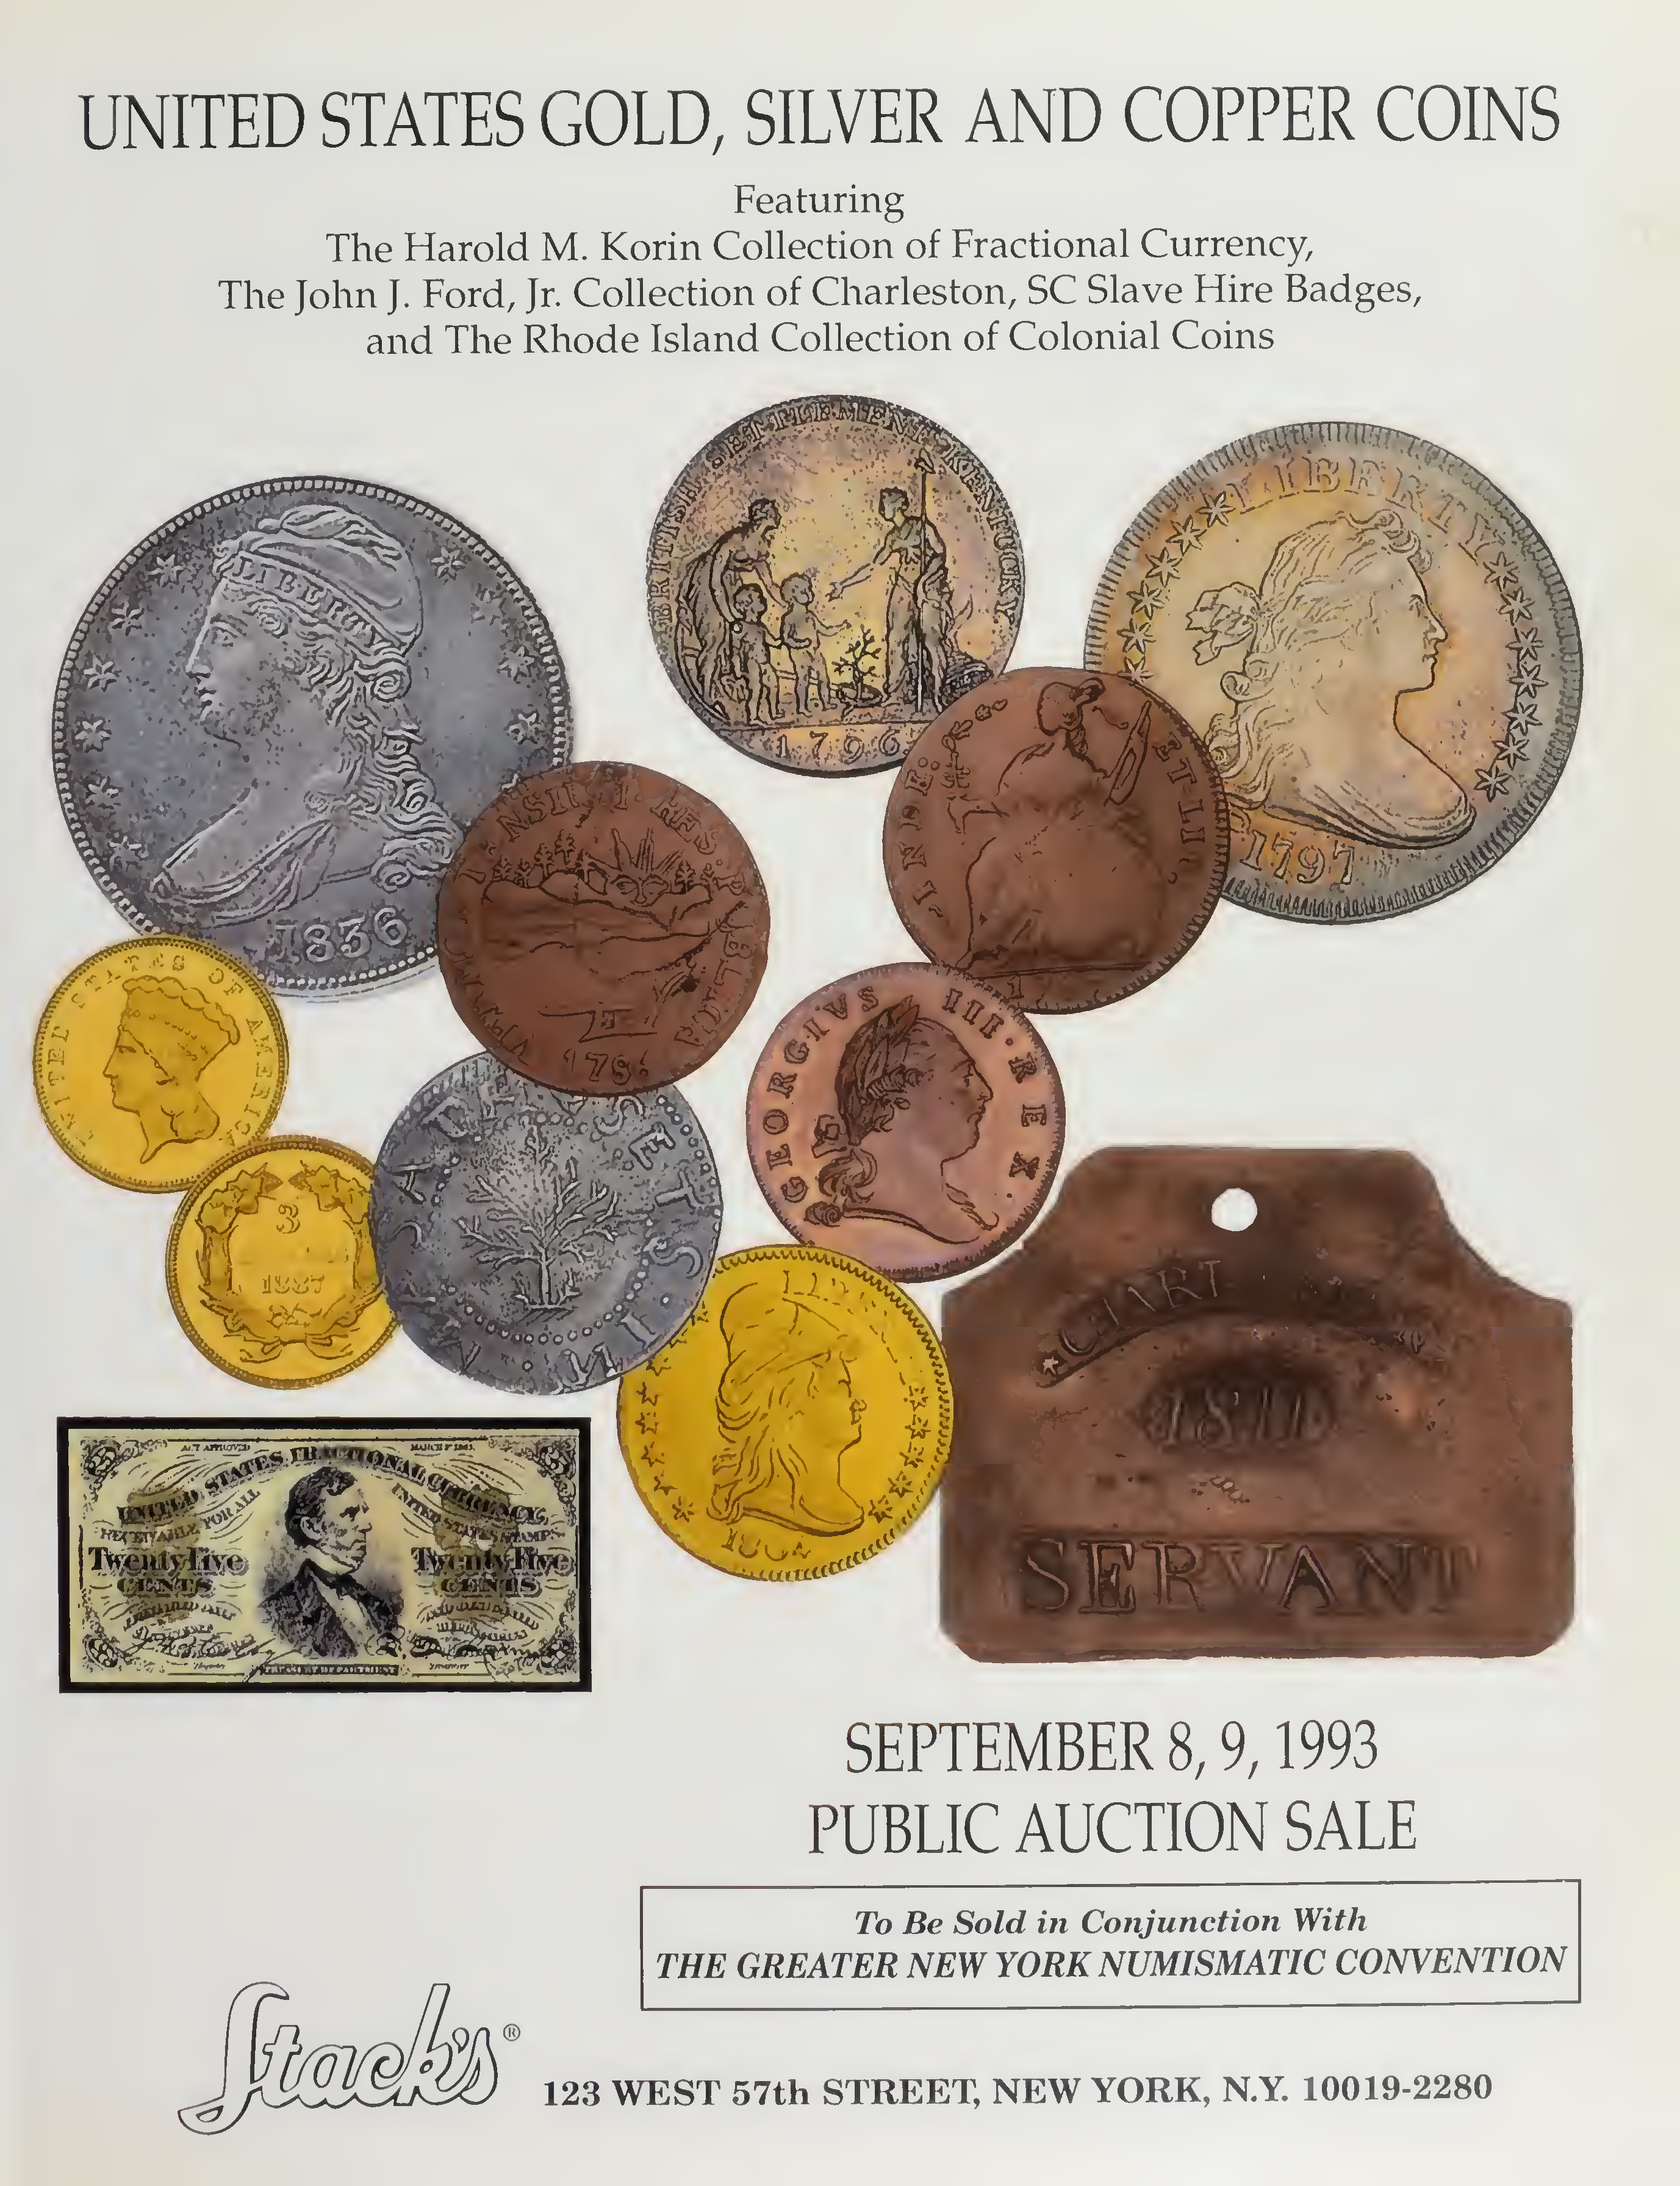 United States Gold, Silver and Copper Coins Featuring The Harold M. Korin Collection of Fractional Currency, The John J. Ford, Jr. Collection of Charleston, SC Slave Hire Badges, and The Rhode Island Collection of Colonial Coins